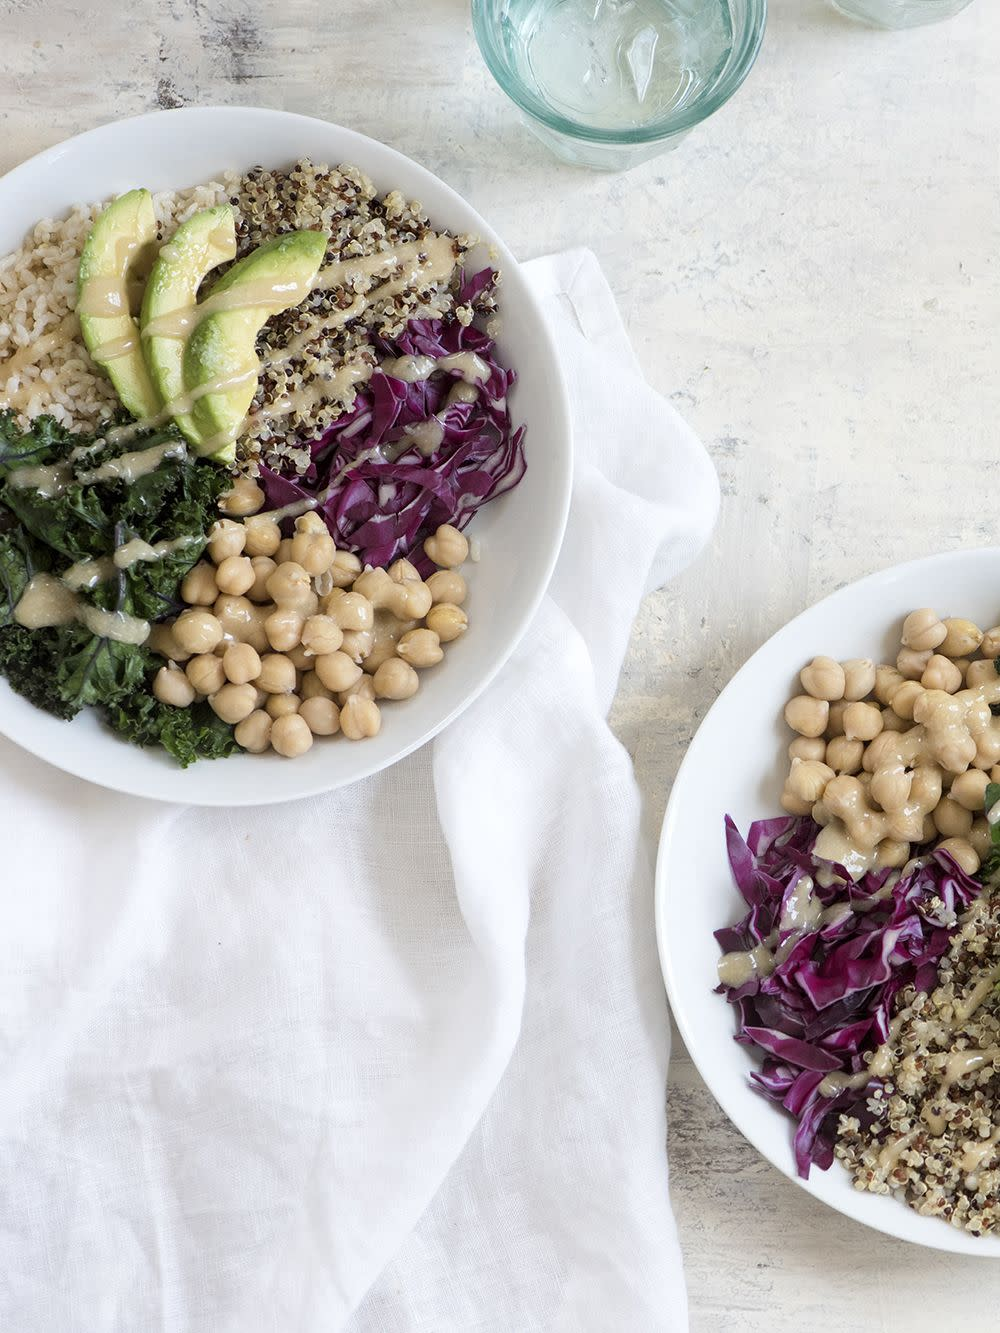 12 of the Best Plant-Based Proteins Even Non-Vegetarians Should Eat - Yahoo Lifestyle